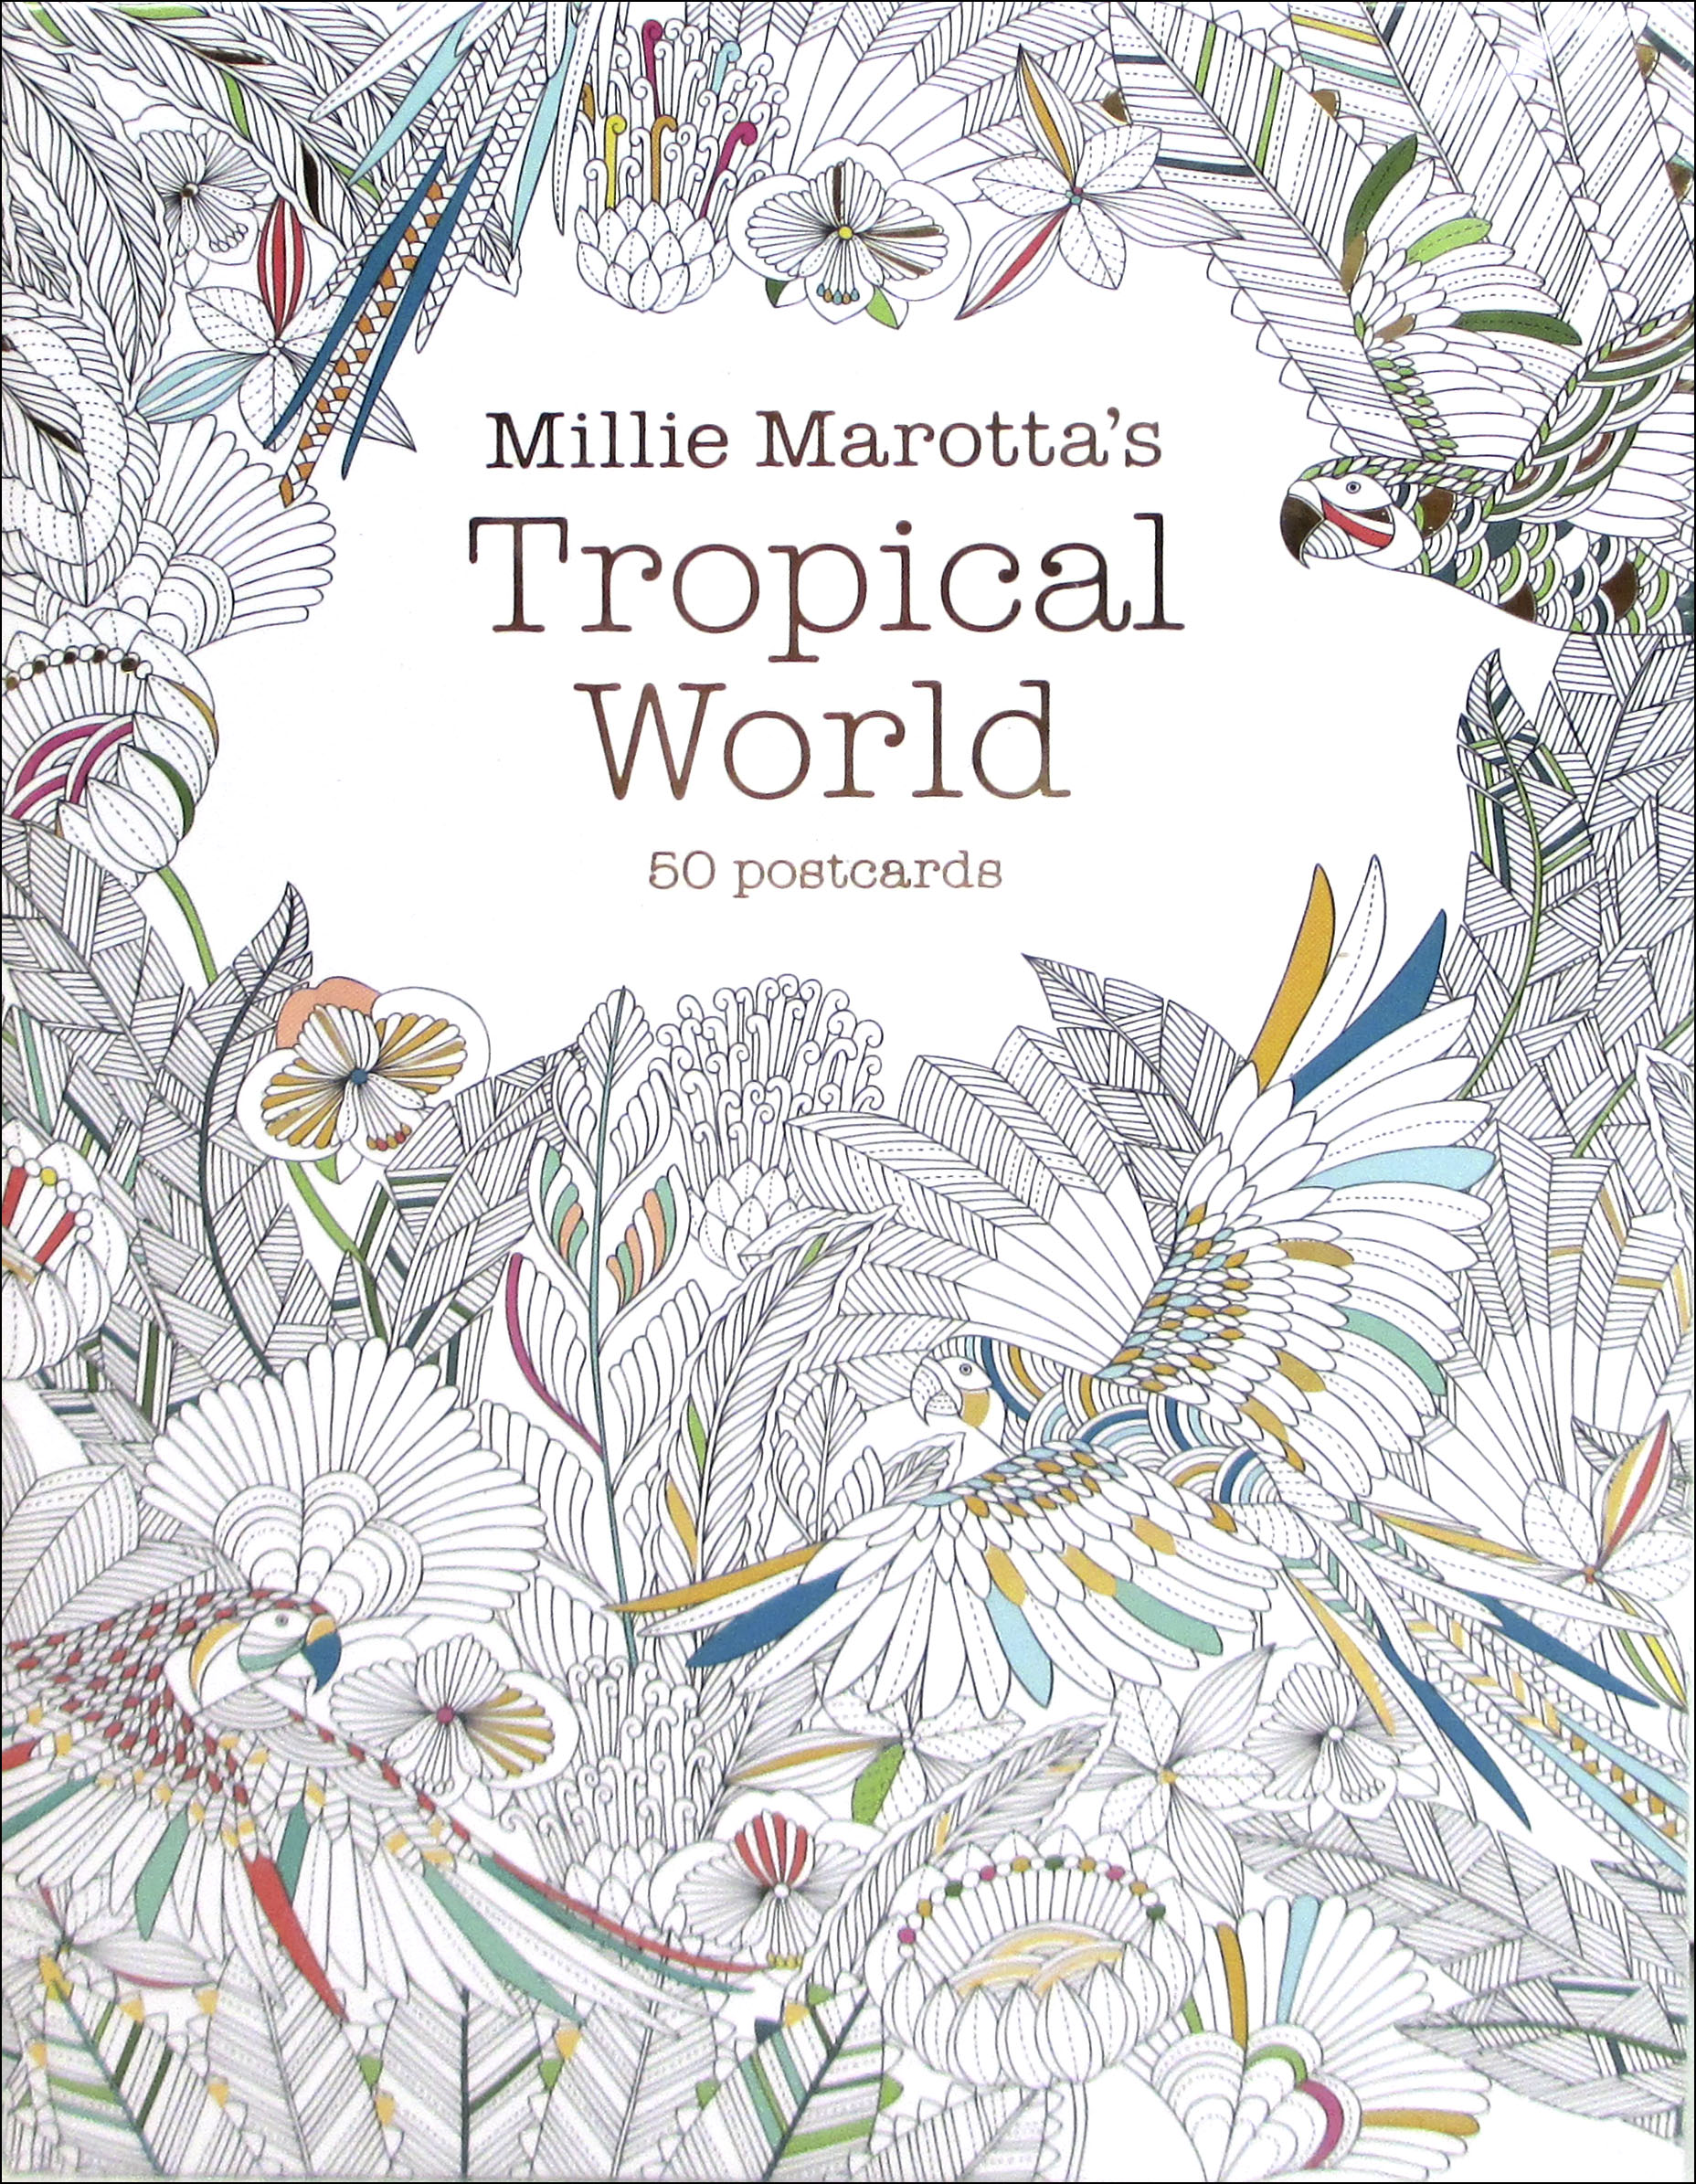 Millie Marottas Tropical World Coloring Postcards CreateForLess